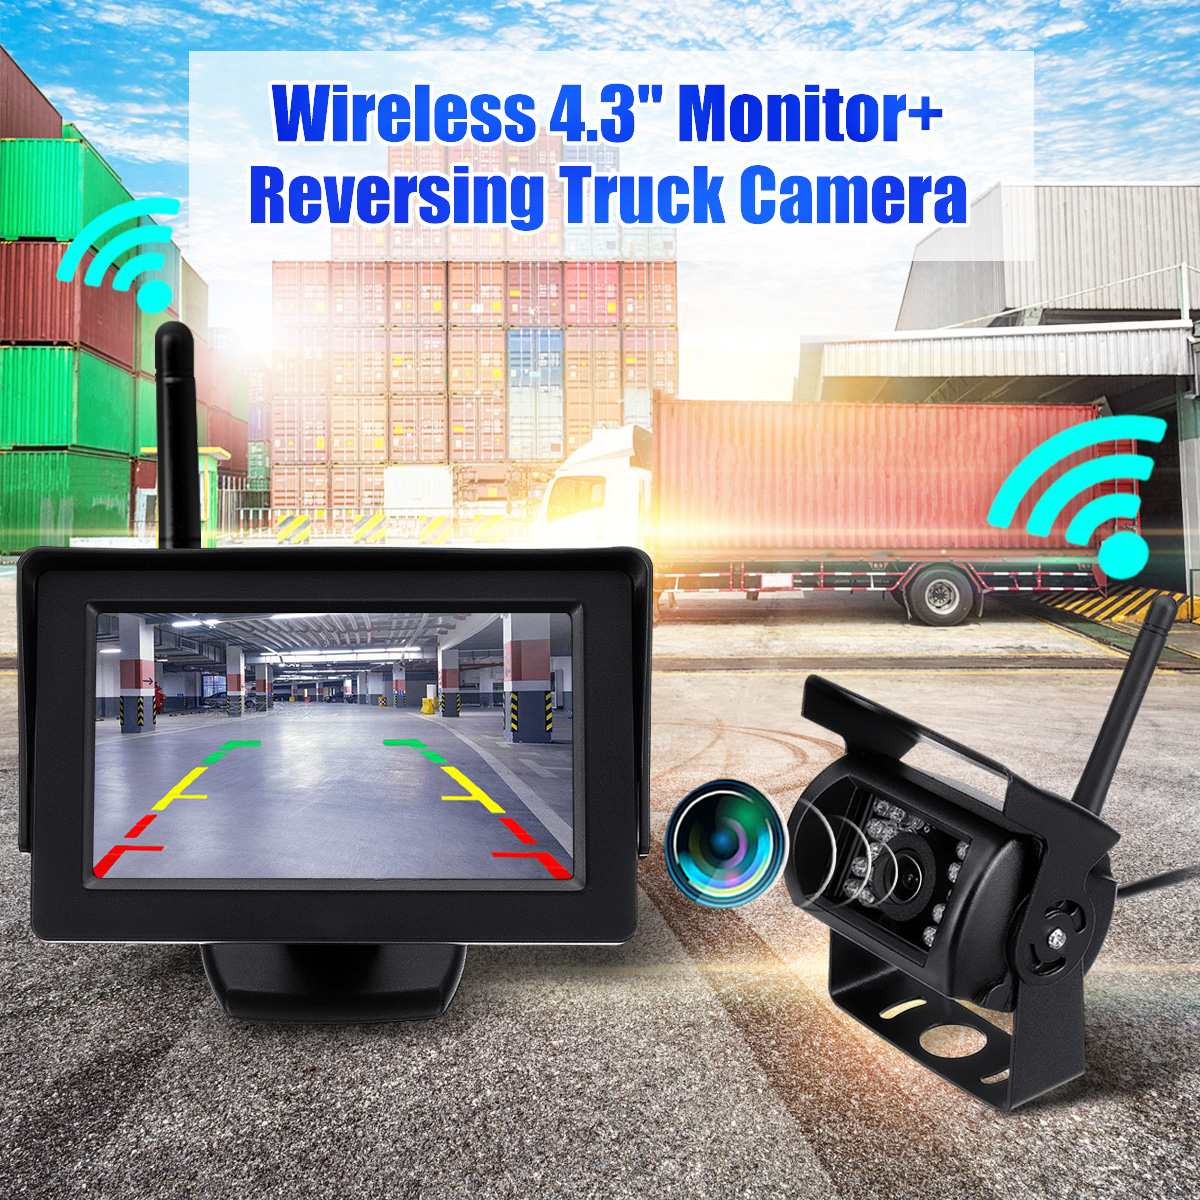 <font><b>4.3</b></font> <font><b>Inch</b></font> <font><b>LCD</b></font> Monitor 2.4G Wireless Car Rear View Camera Truck Back up Camera Monitor For Truck Bus Parking Rear View System image